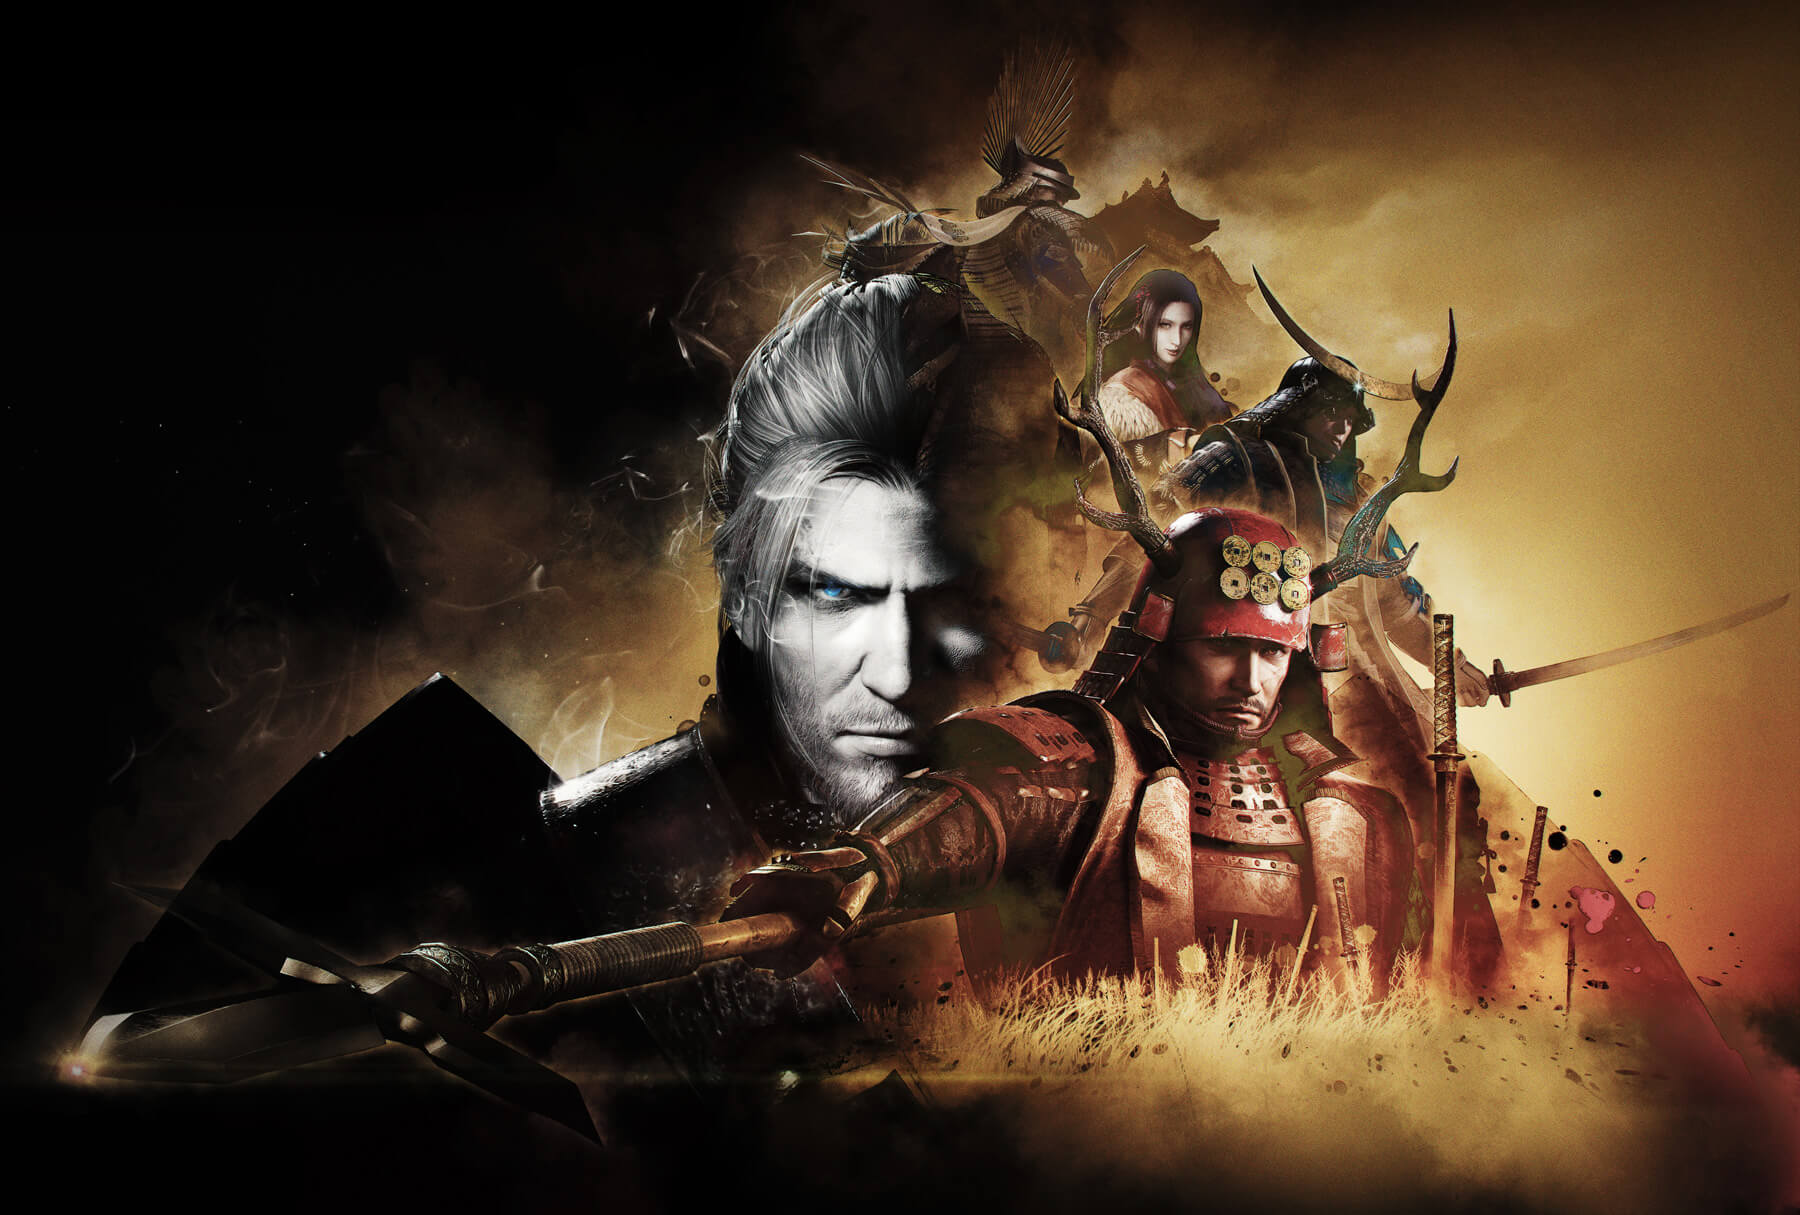 Nioh: Complete Edition features the WORST keyboard controls